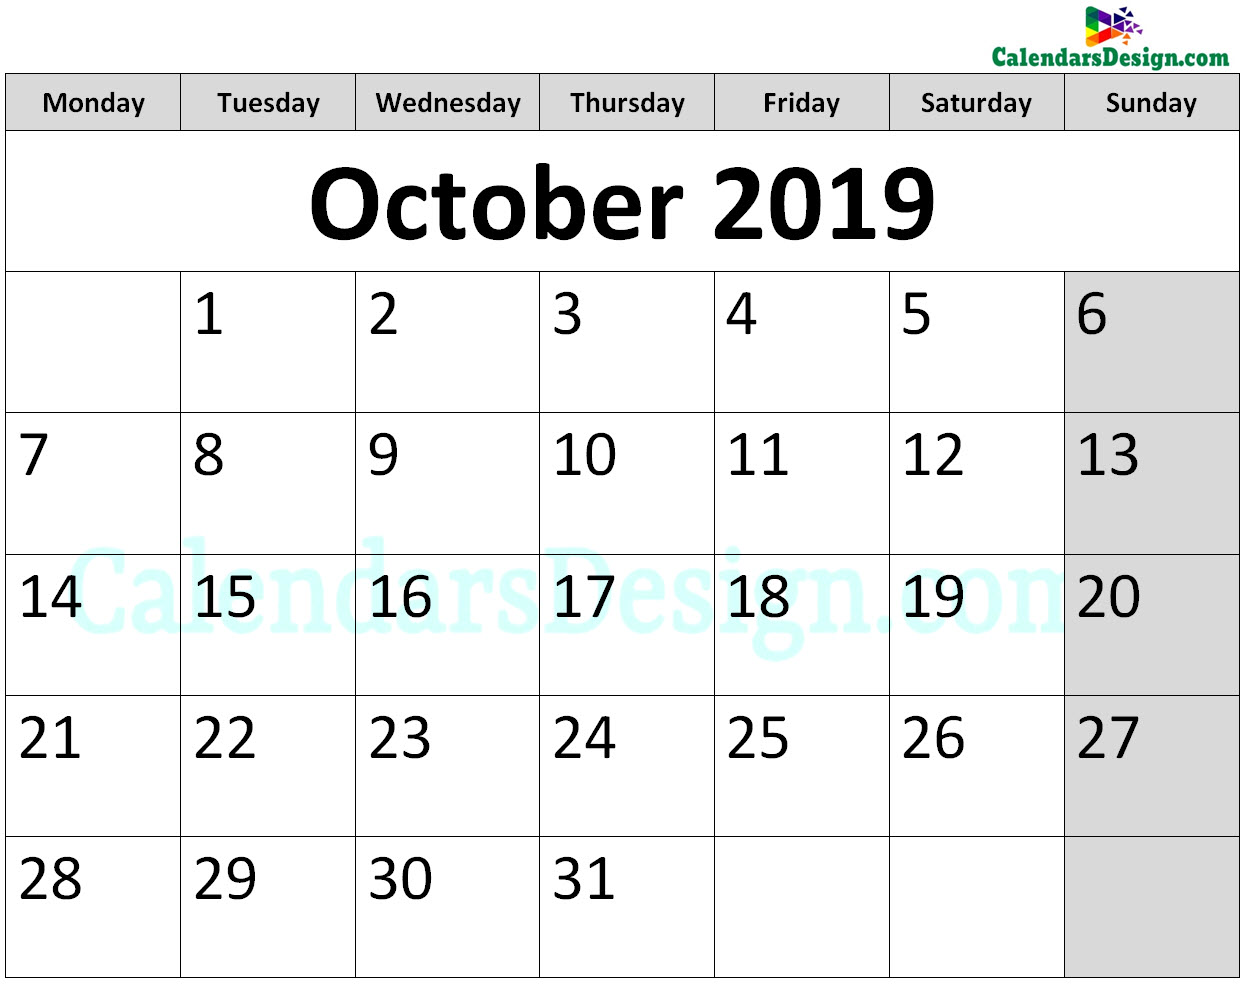 Print October 2019 Calendar in Page Format